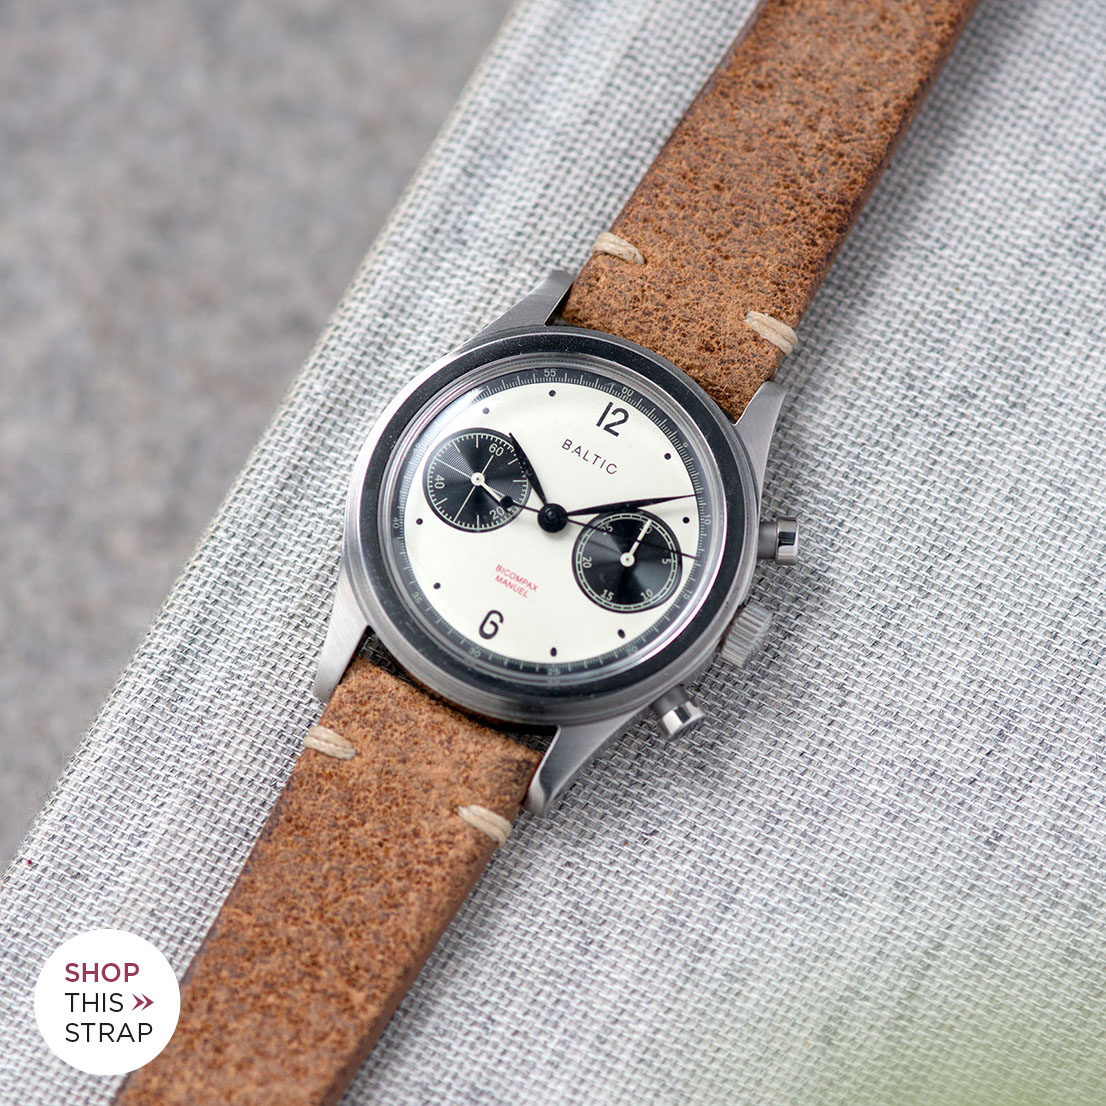 Bulang and Sons Strap Guide Baltic Chronograph Limited Edition